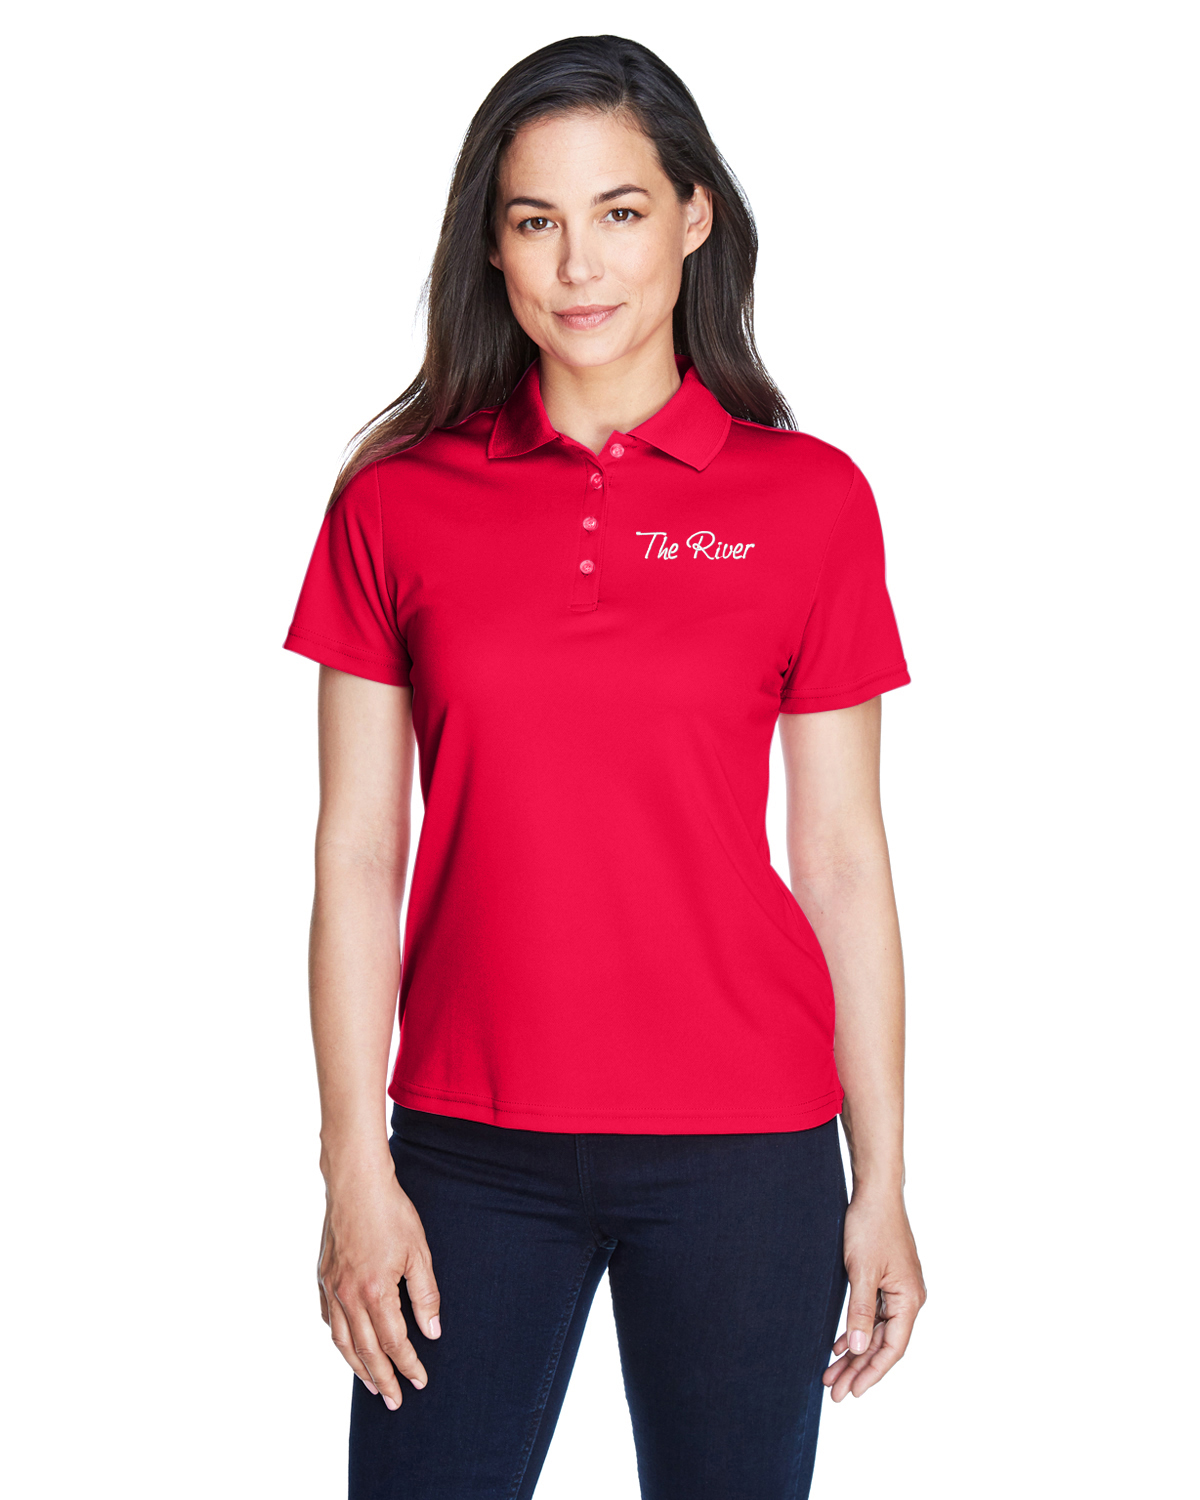 78181 Core 365 Ladies' Origin Performance Piqué Polo Classic Red